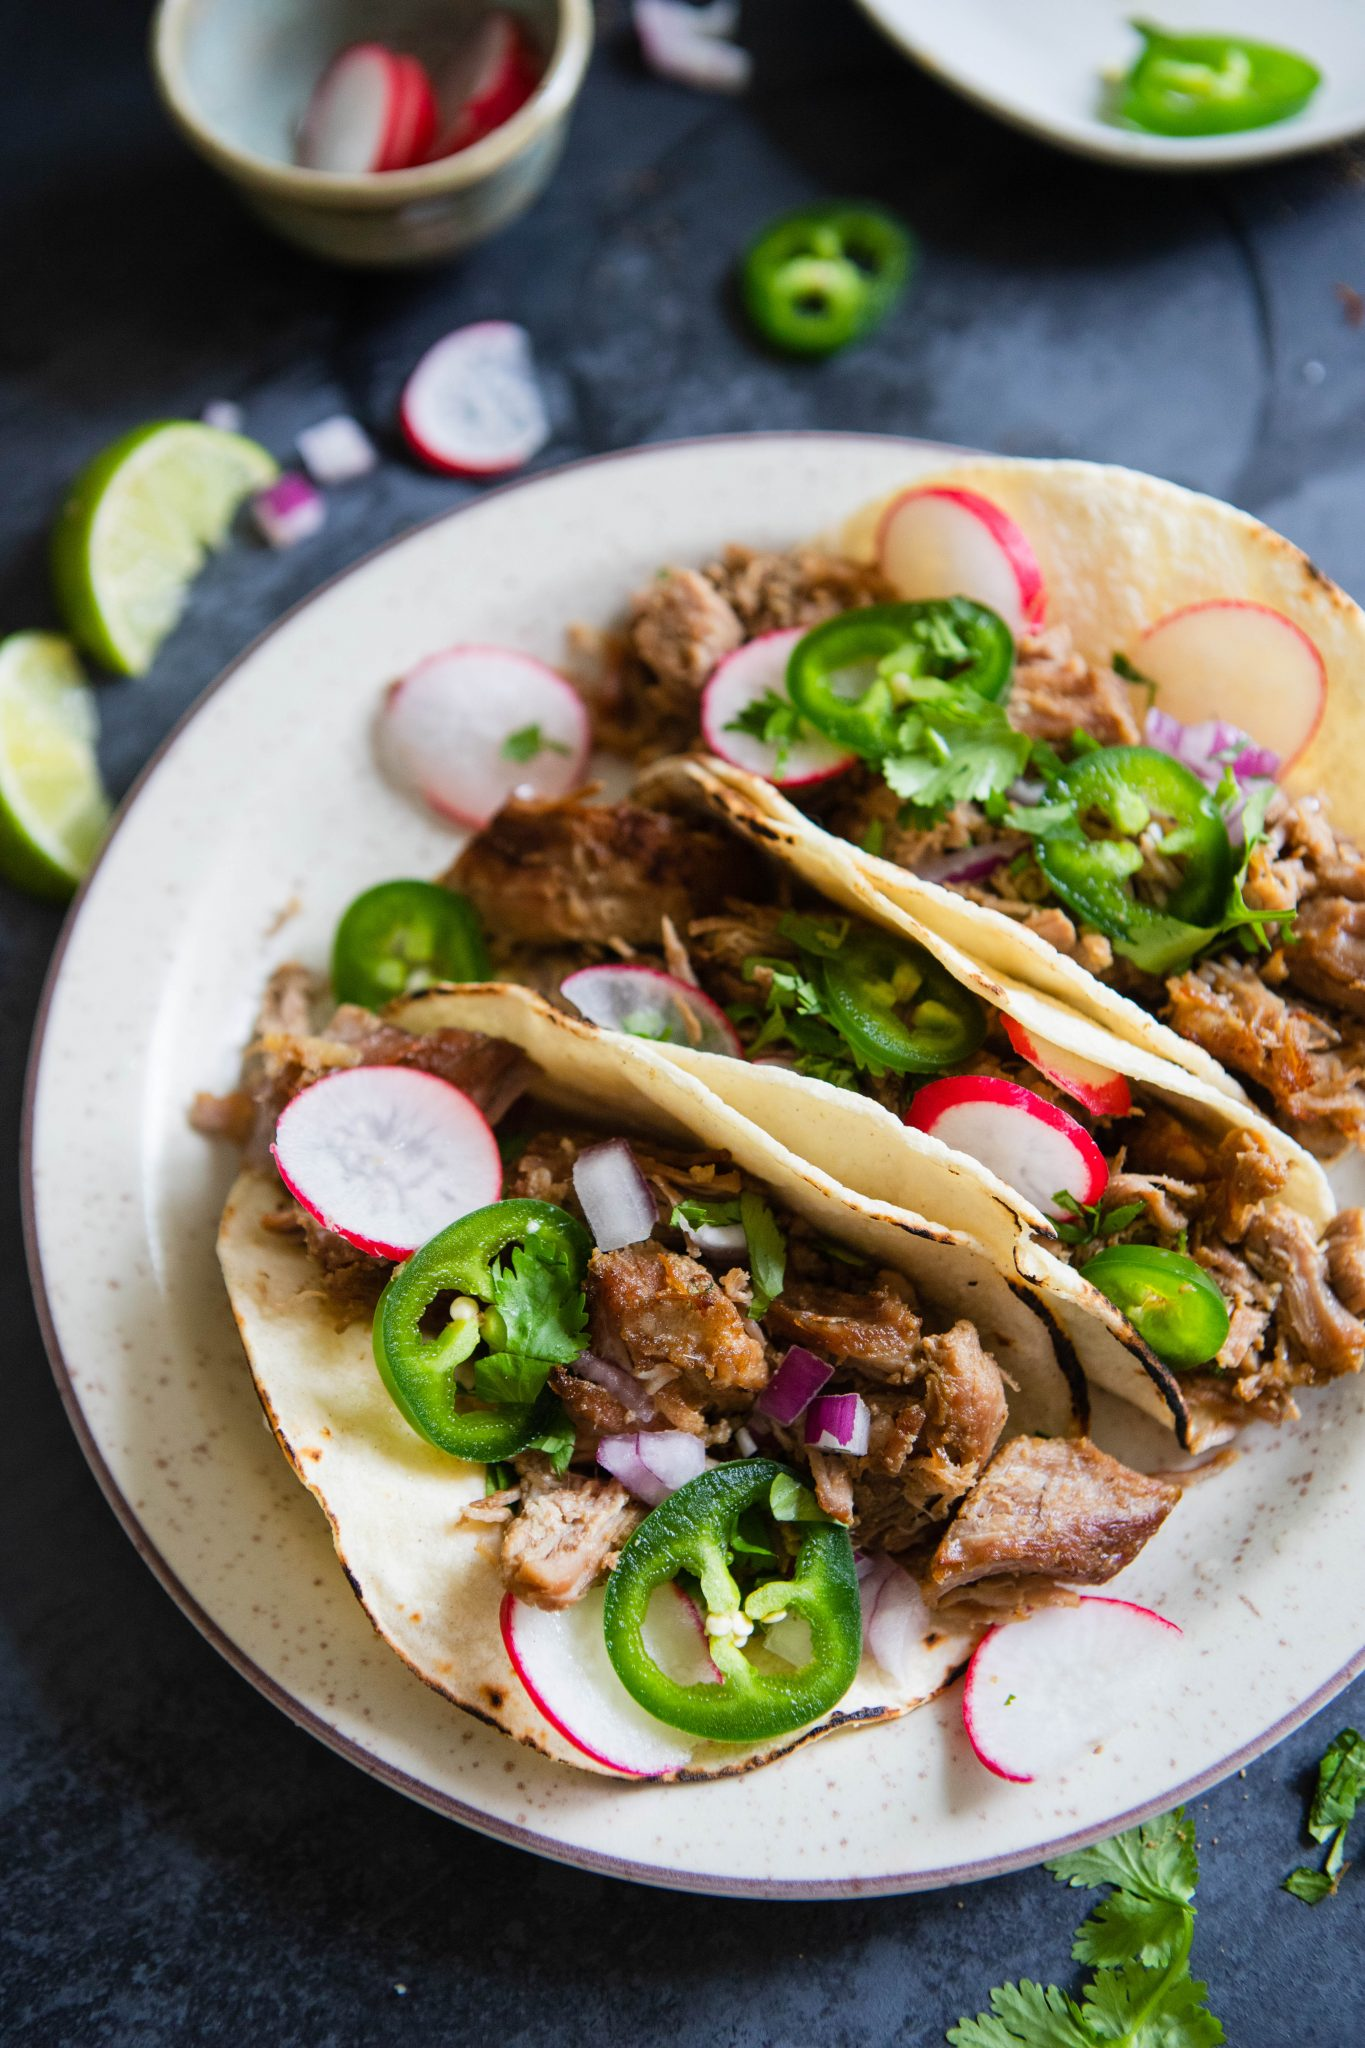 tacos stuffed with carnitas and topped with garnishes